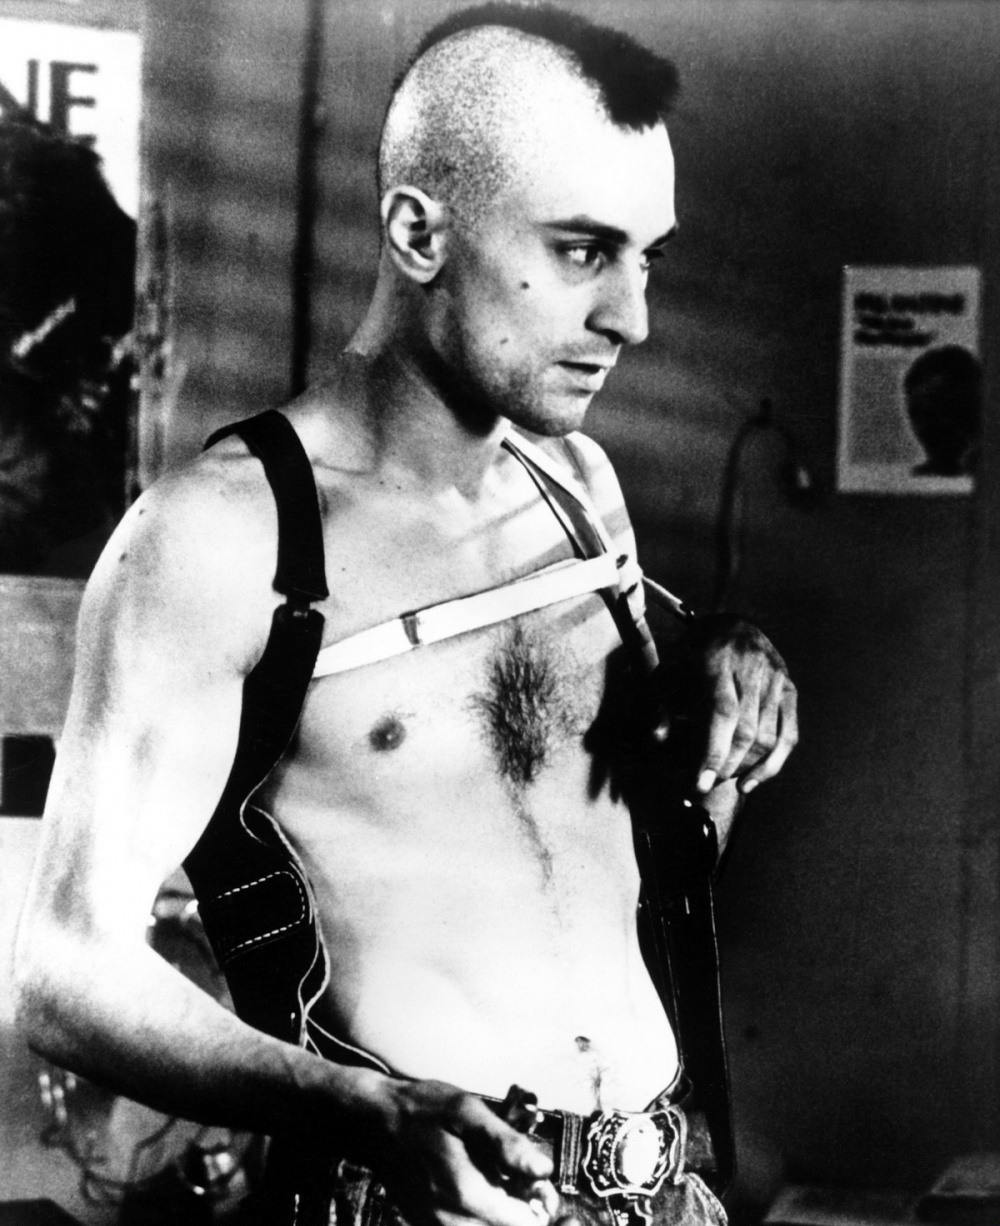 Taxi_Driver | Todo Cine. All movies | Pinterest